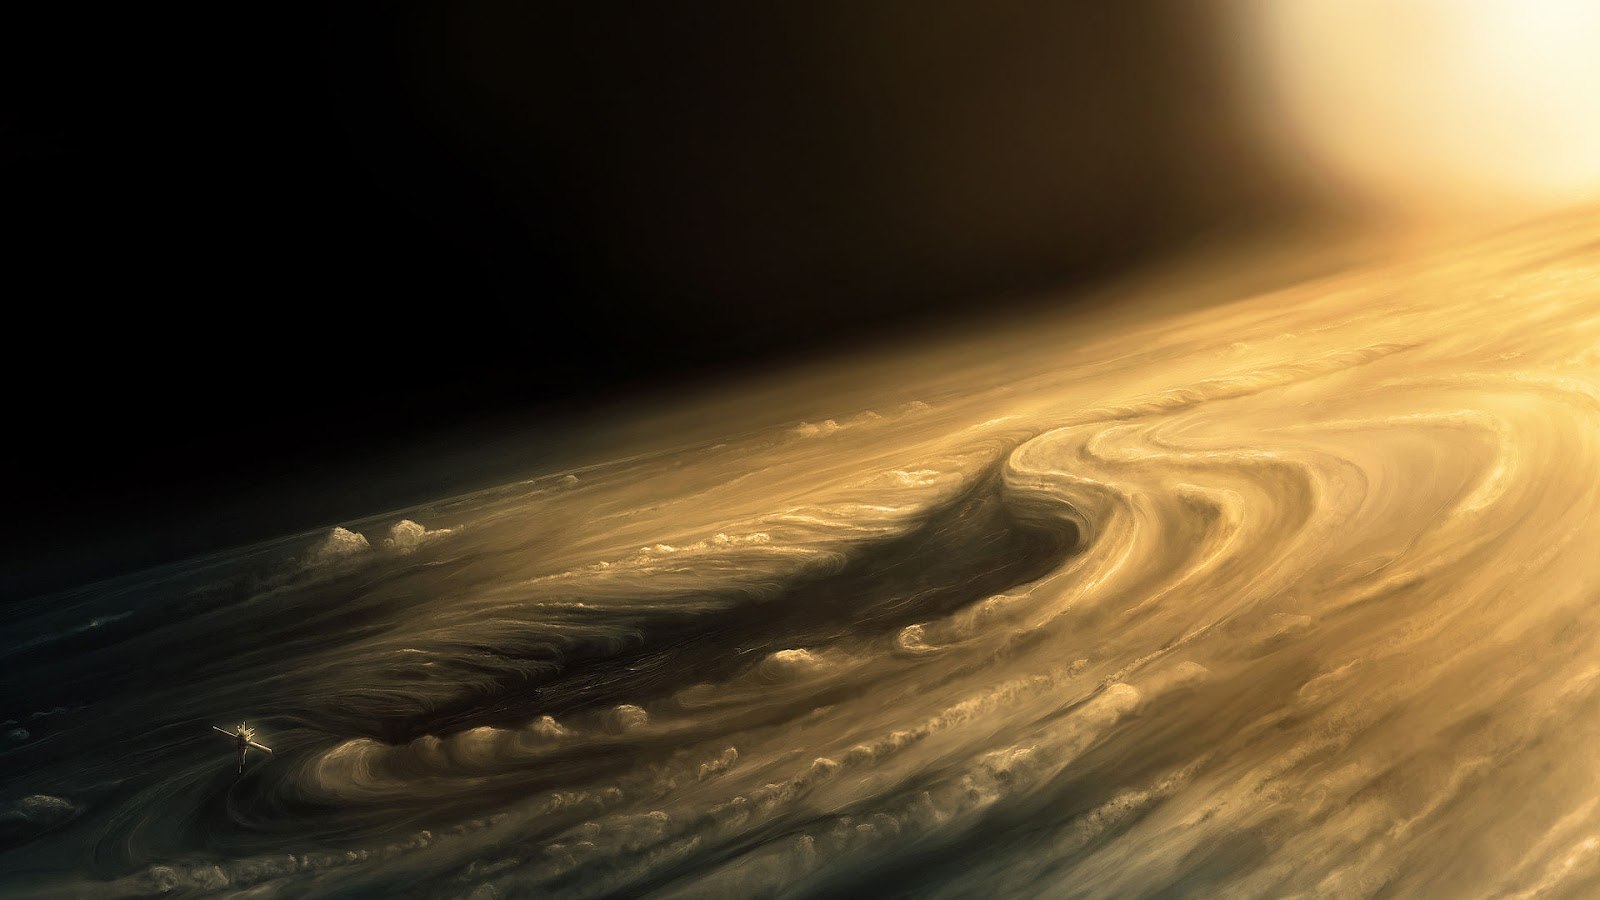 jupiter-surface-painting-wallpaper.jpg